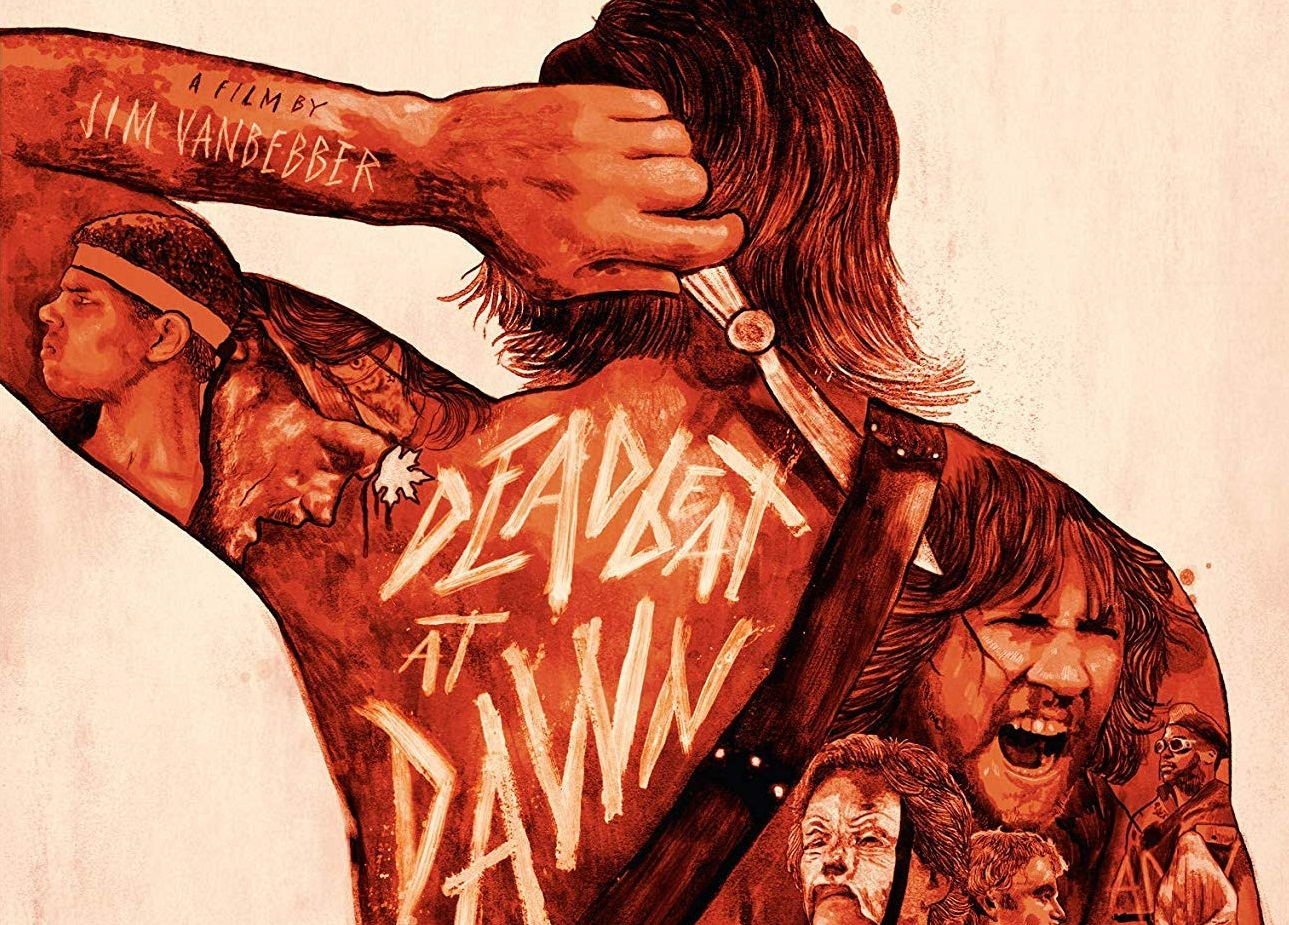 Arrow Video's Deadbeat at Dawn